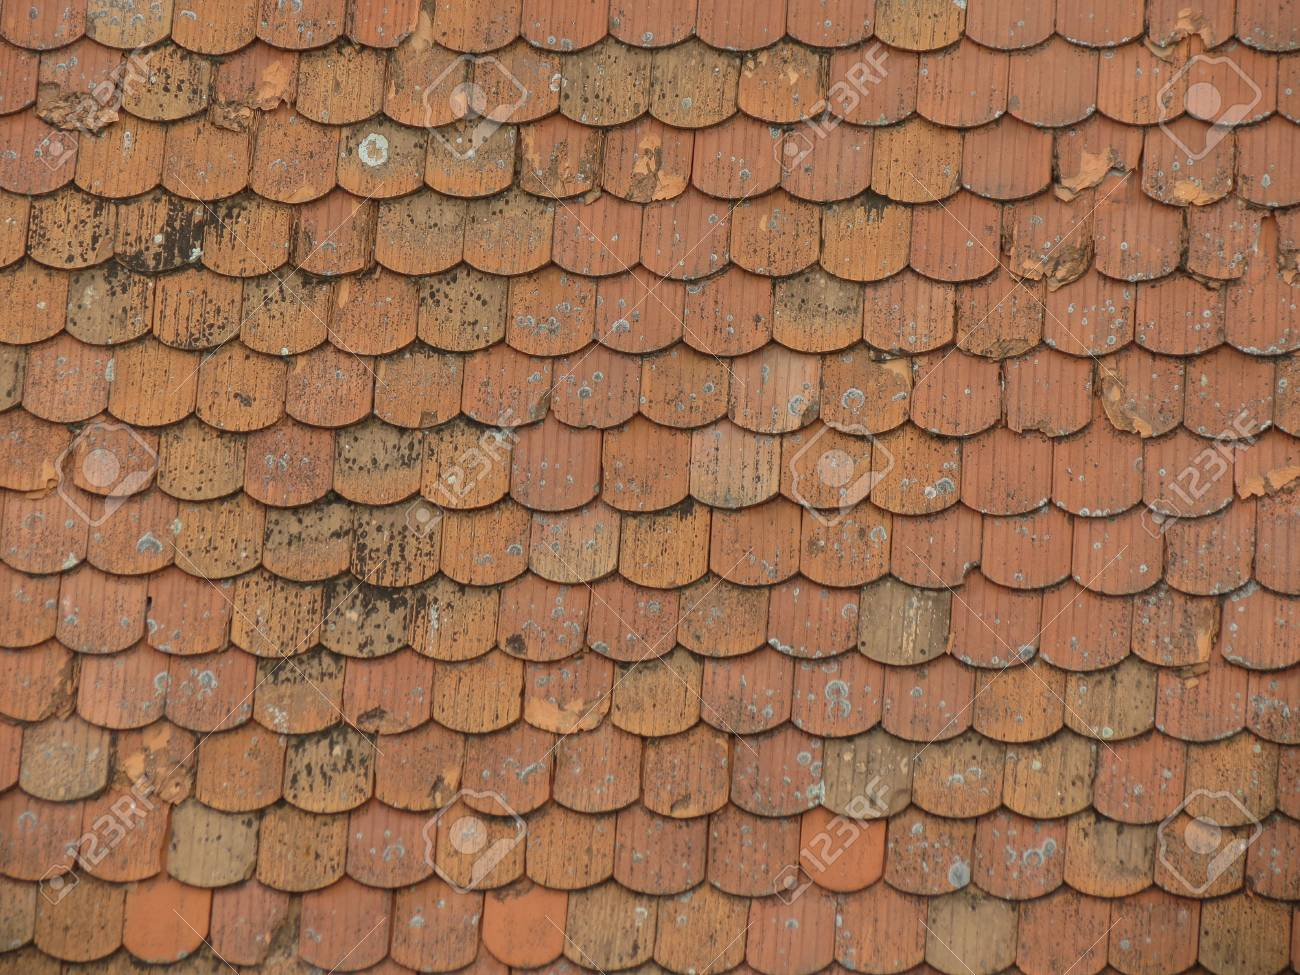 Brick Roof Texture red brick roof tile texture useful as a background stock photo